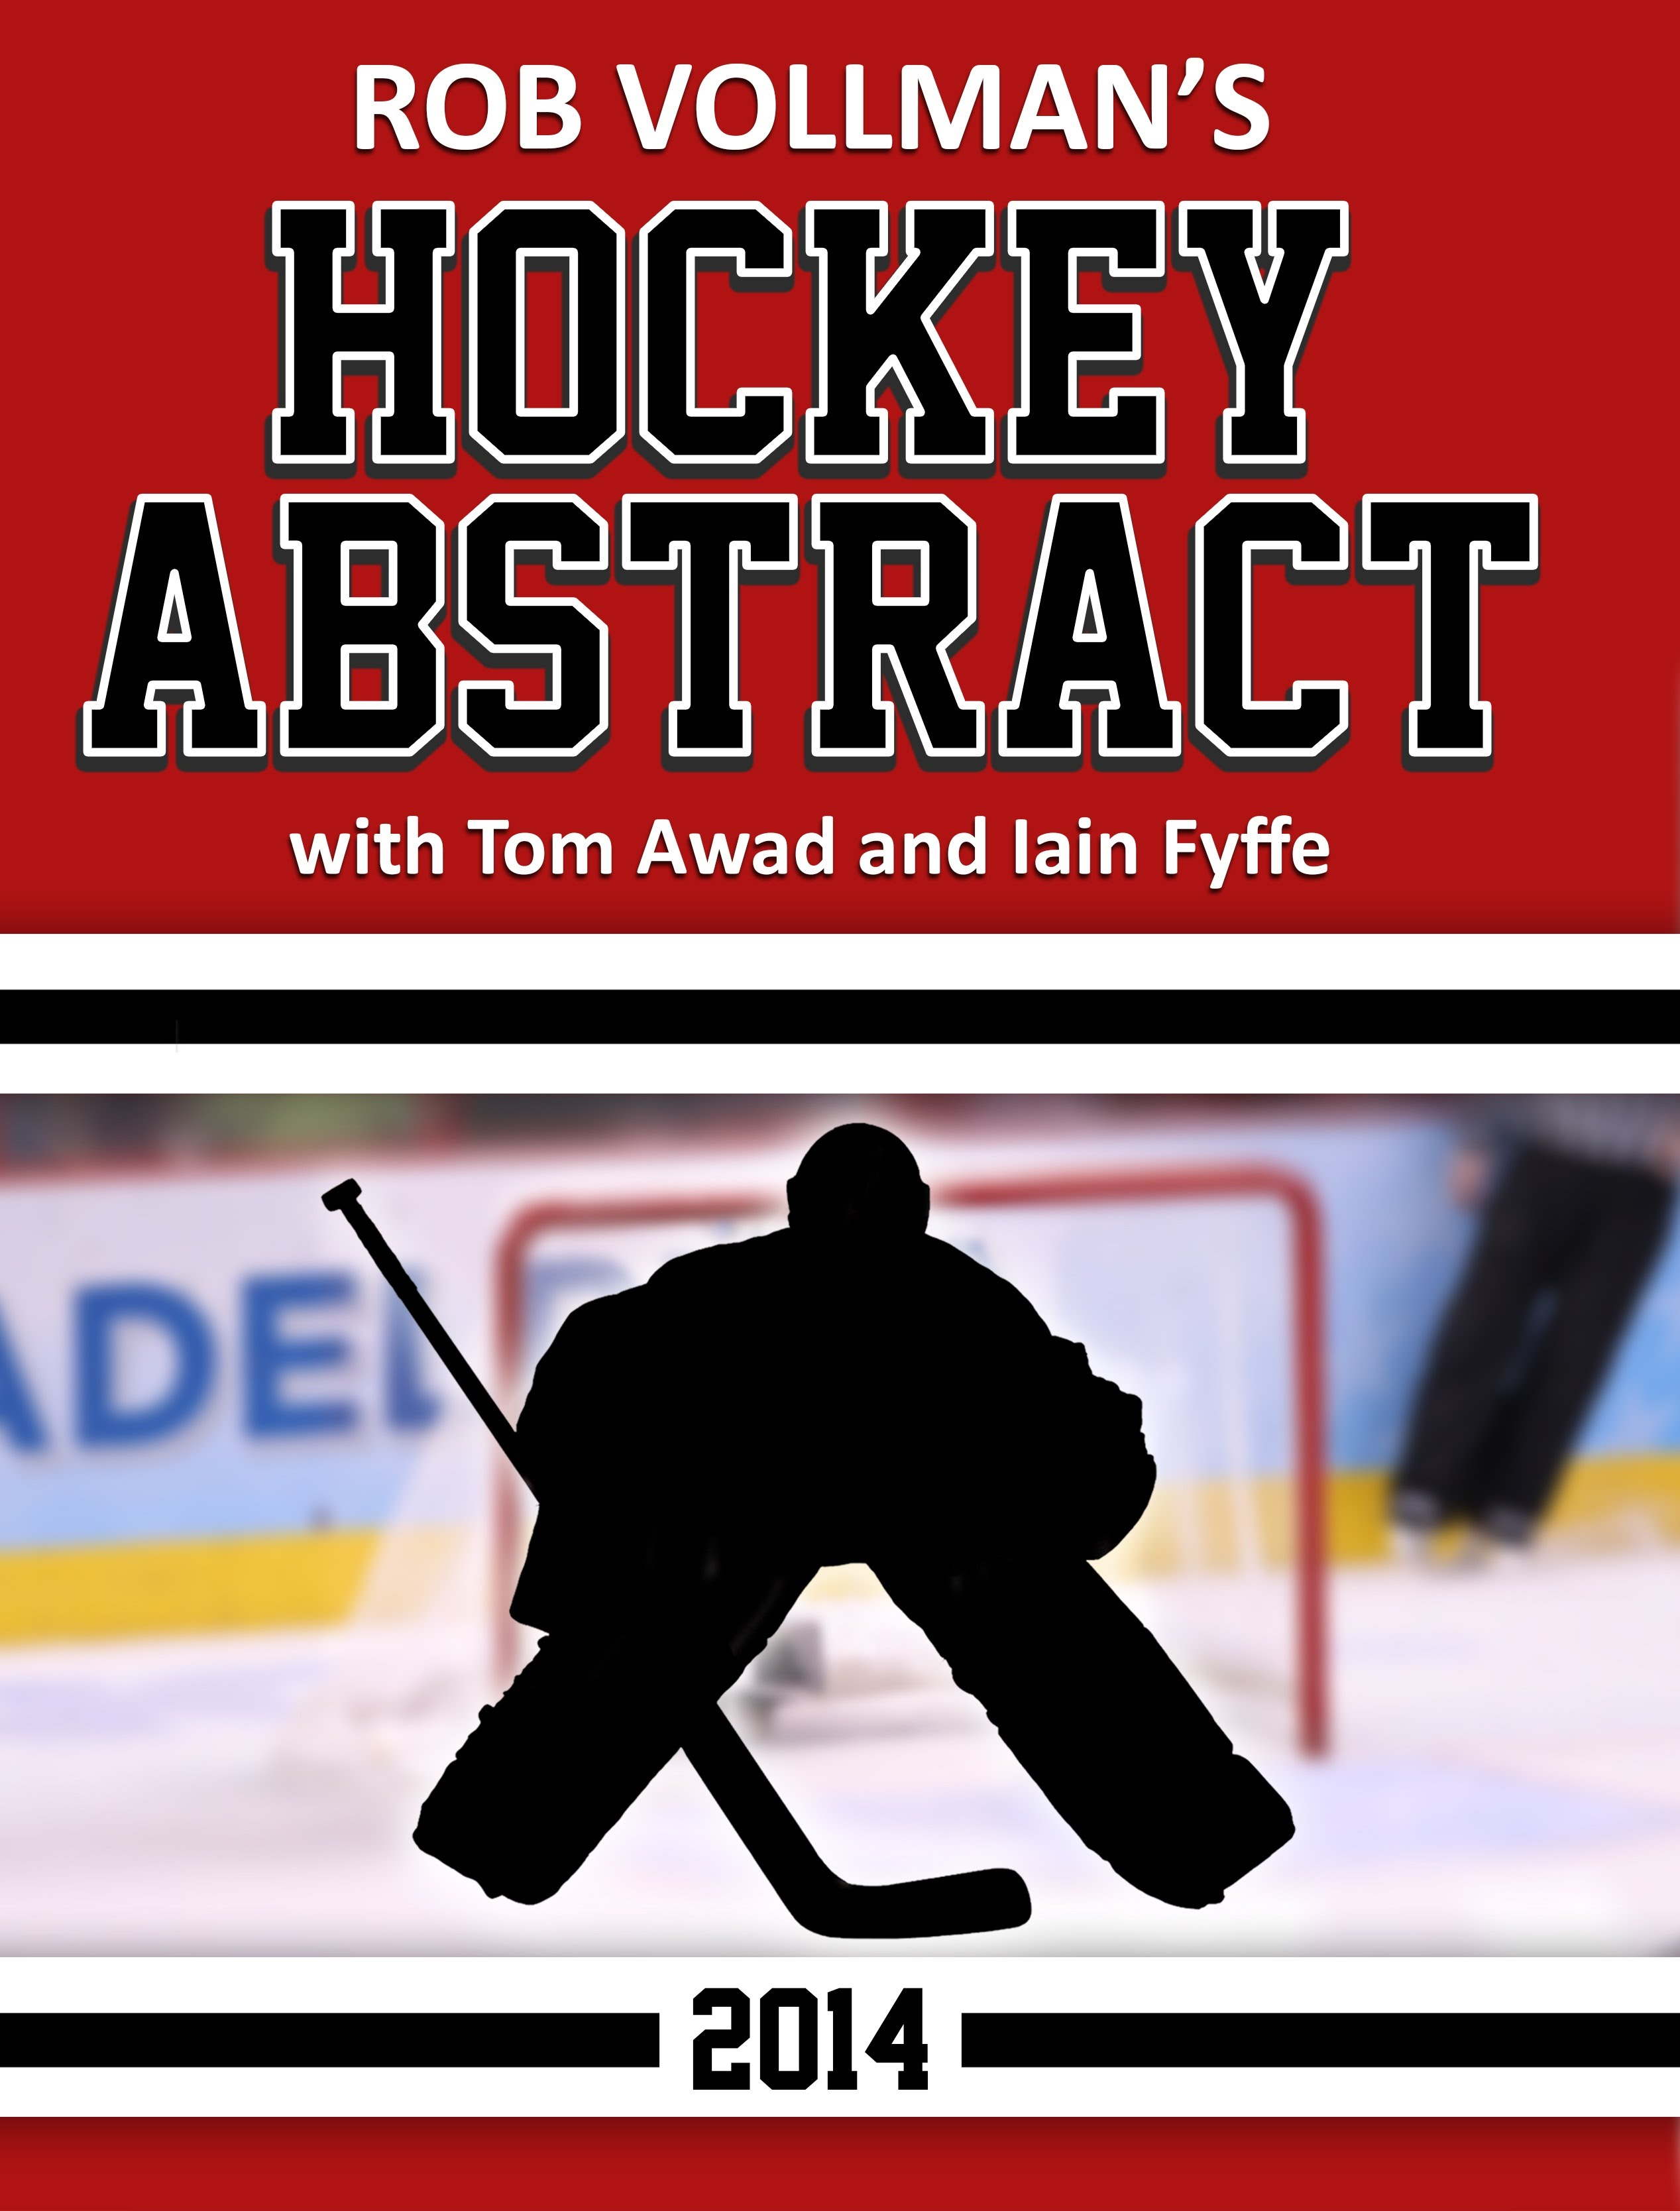 http://www.hockeyabstract.com/2014edition